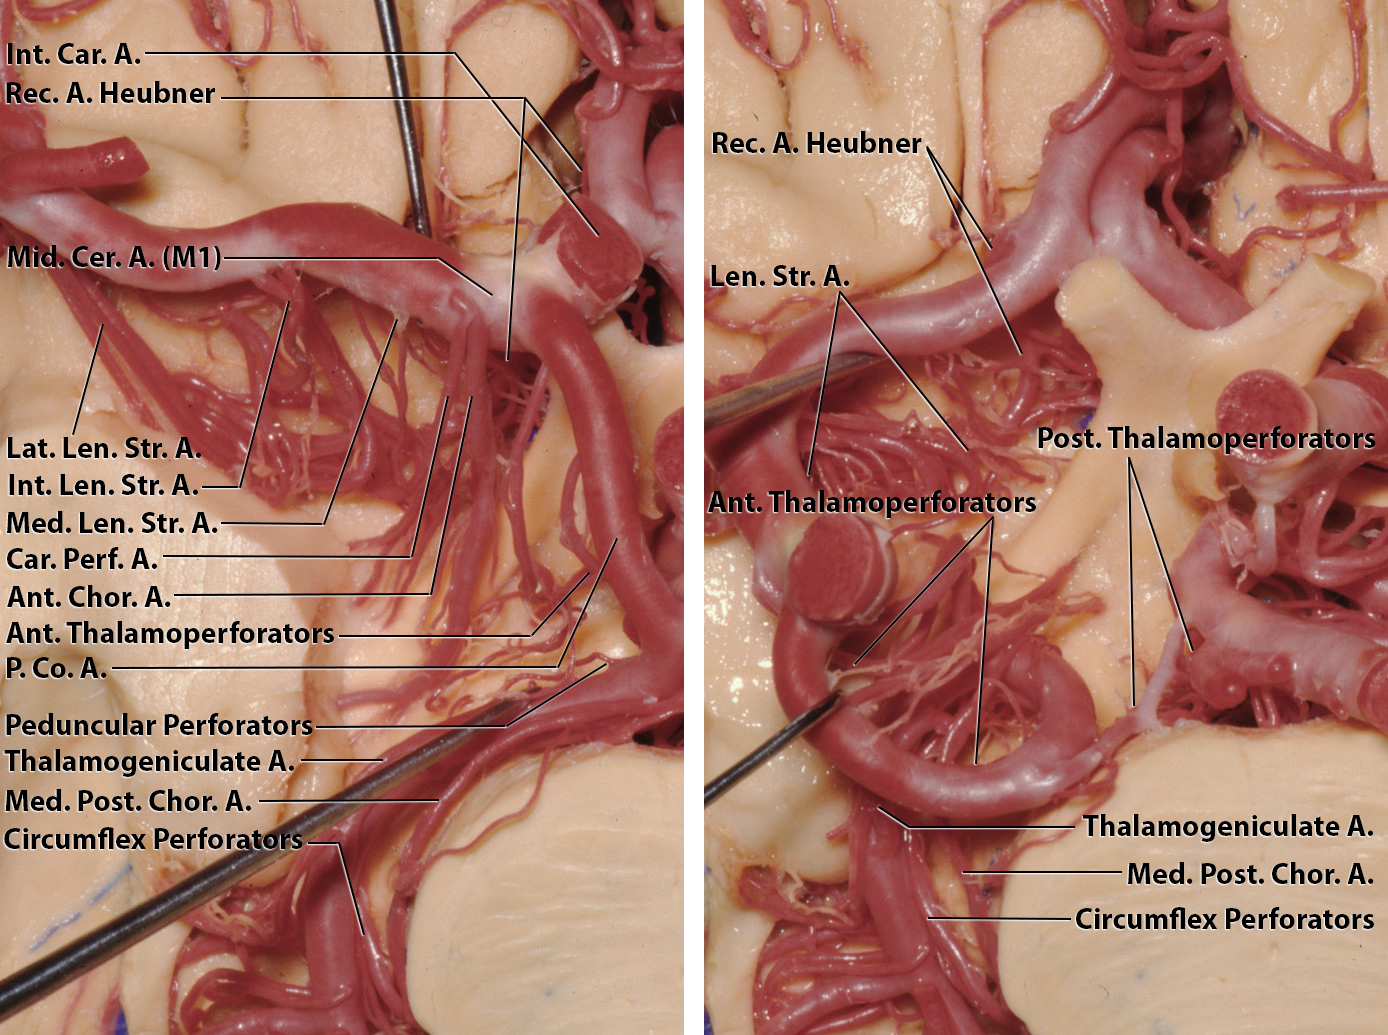 Figure 1: The origins of the perforating arteries, mentioned above, from an inferior view of the circle of Willis are illustrated (images courtesy of AL Rhoton, Jr).